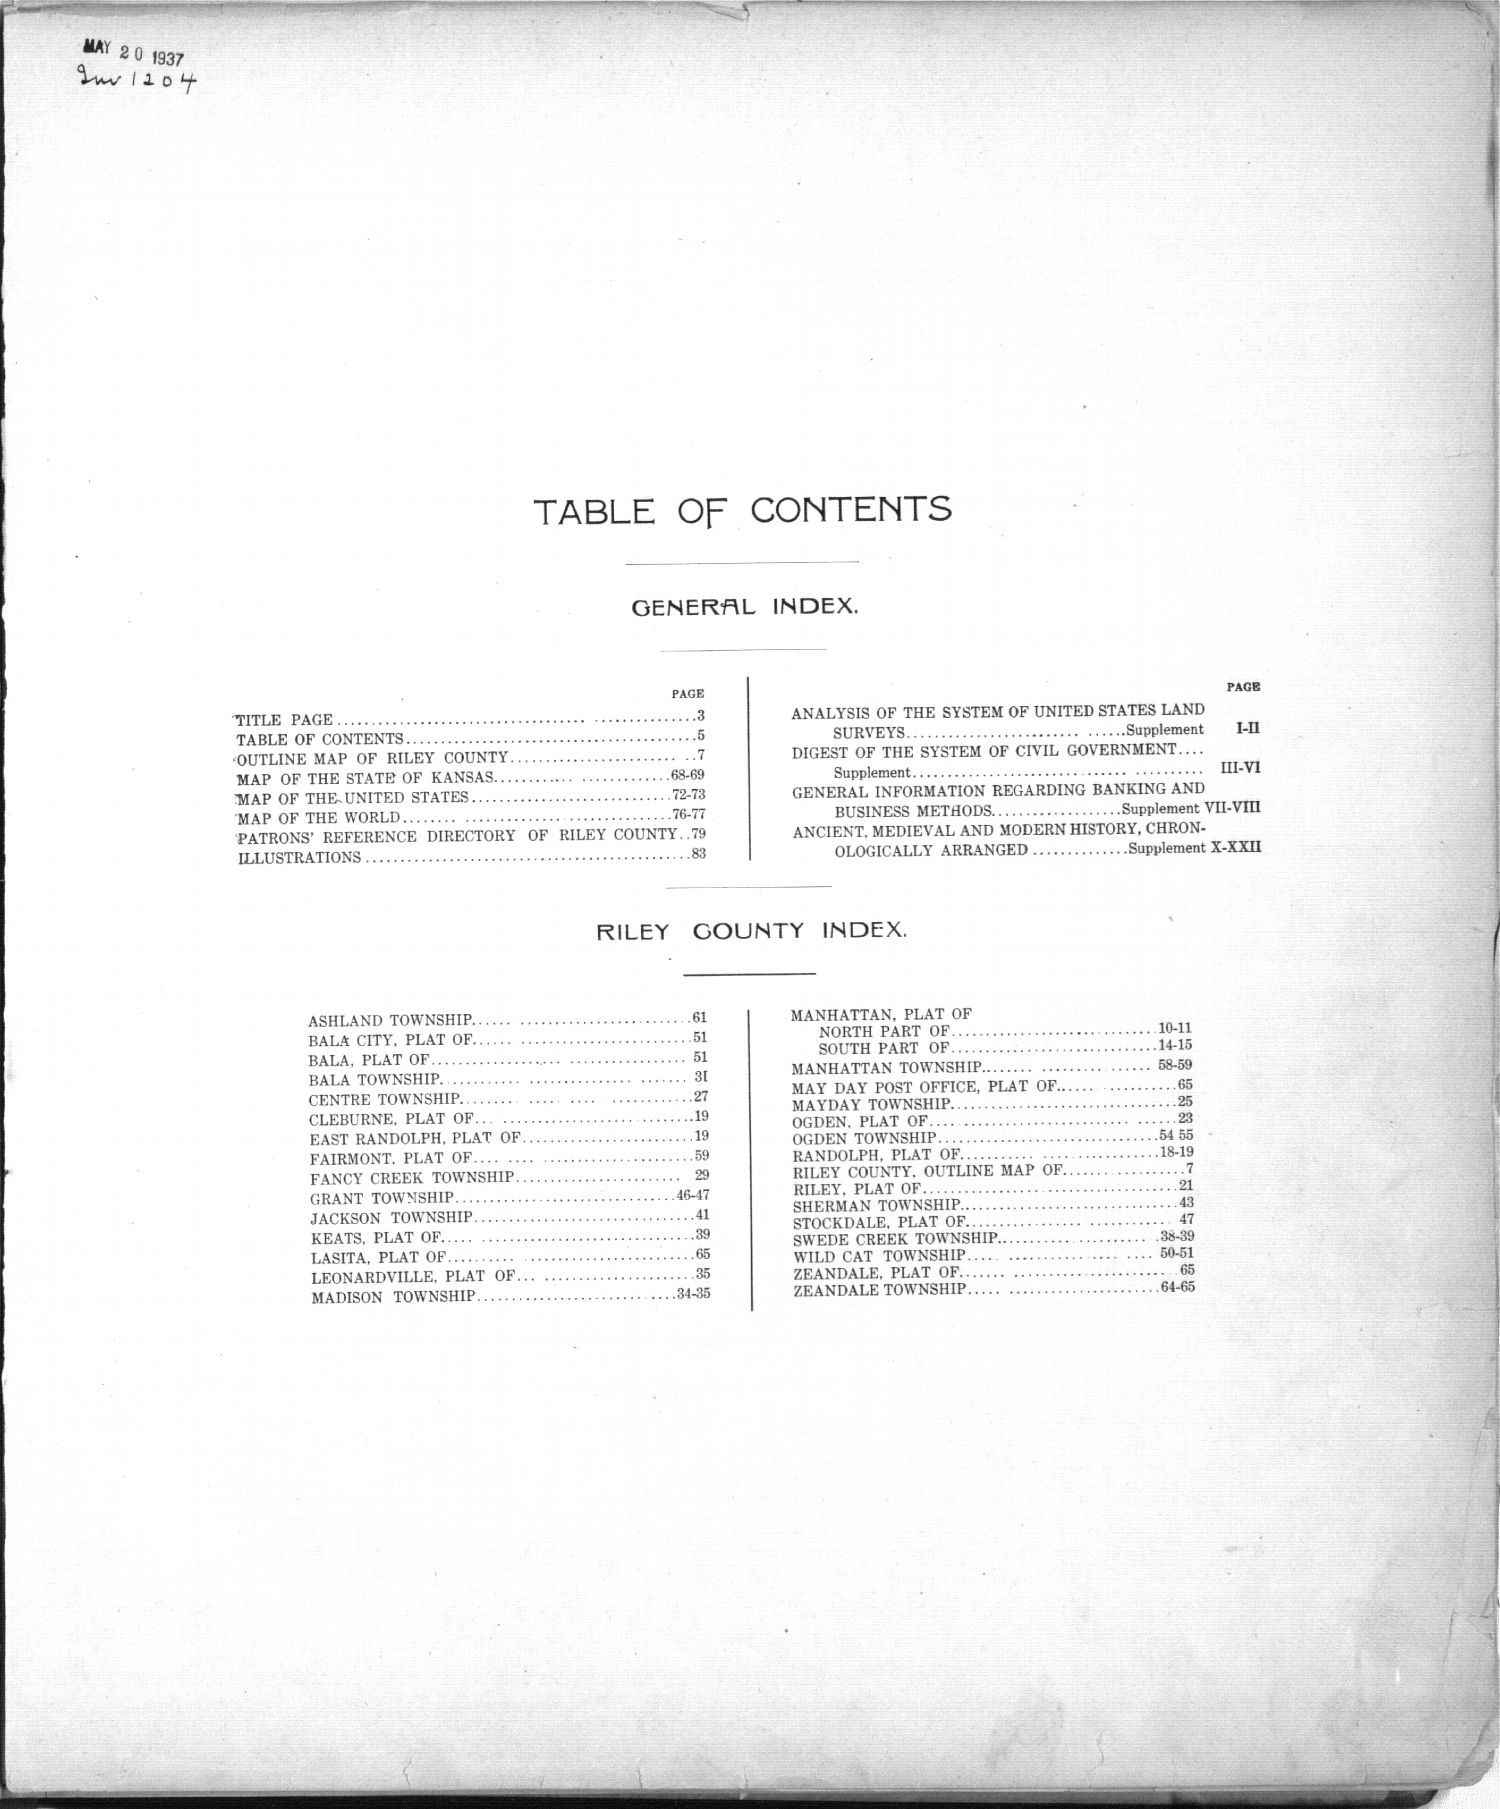 Standard atlas of Riley County, Kansas - Table of Contents